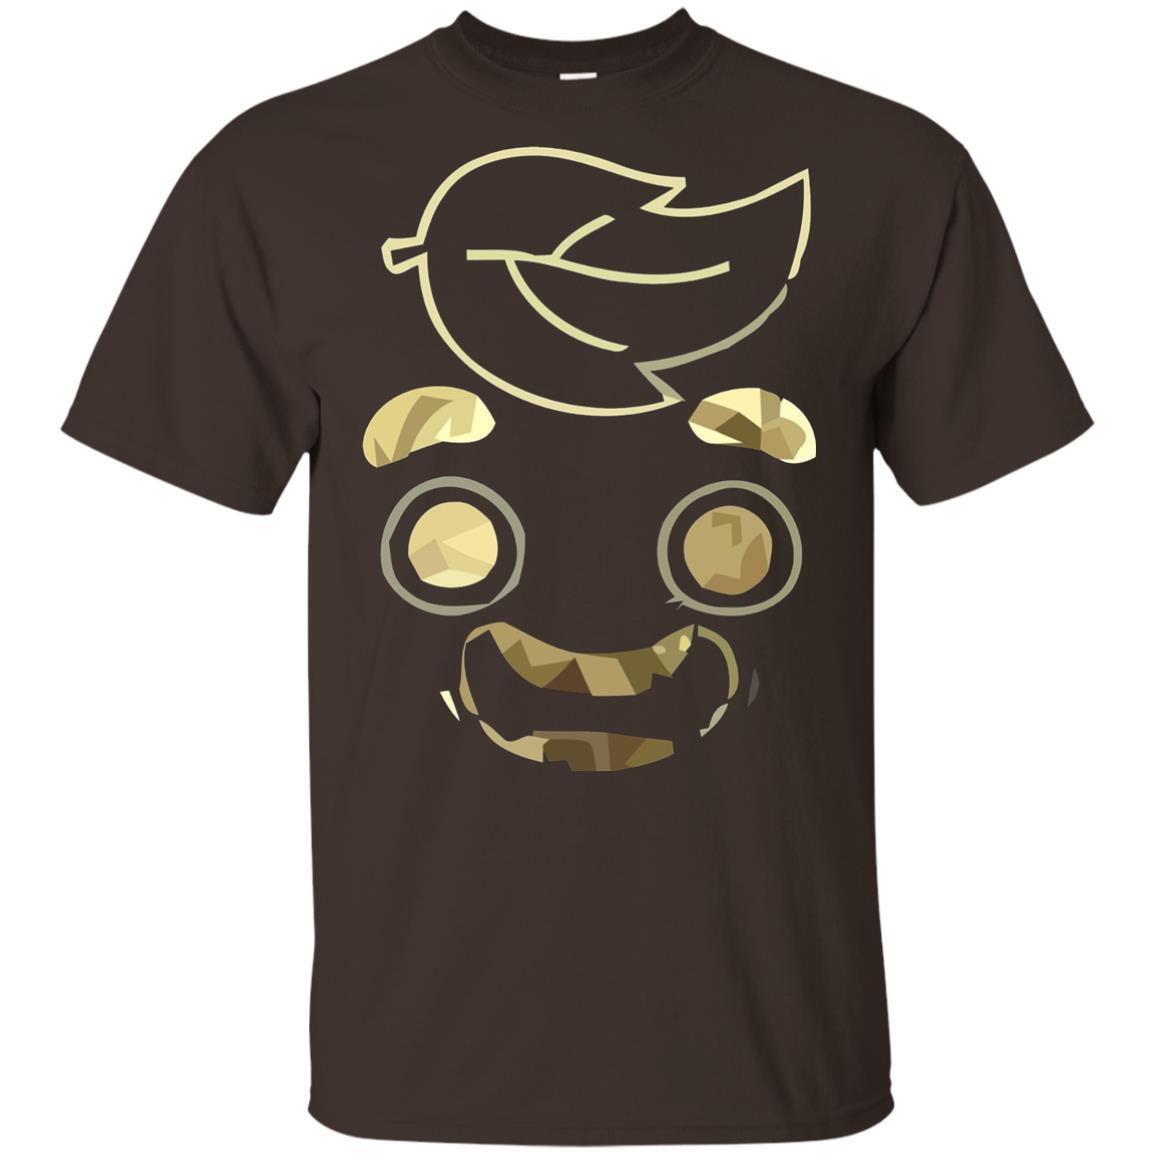 Guava Juice Limited Edition Gold Foil - Youth T-Shirt